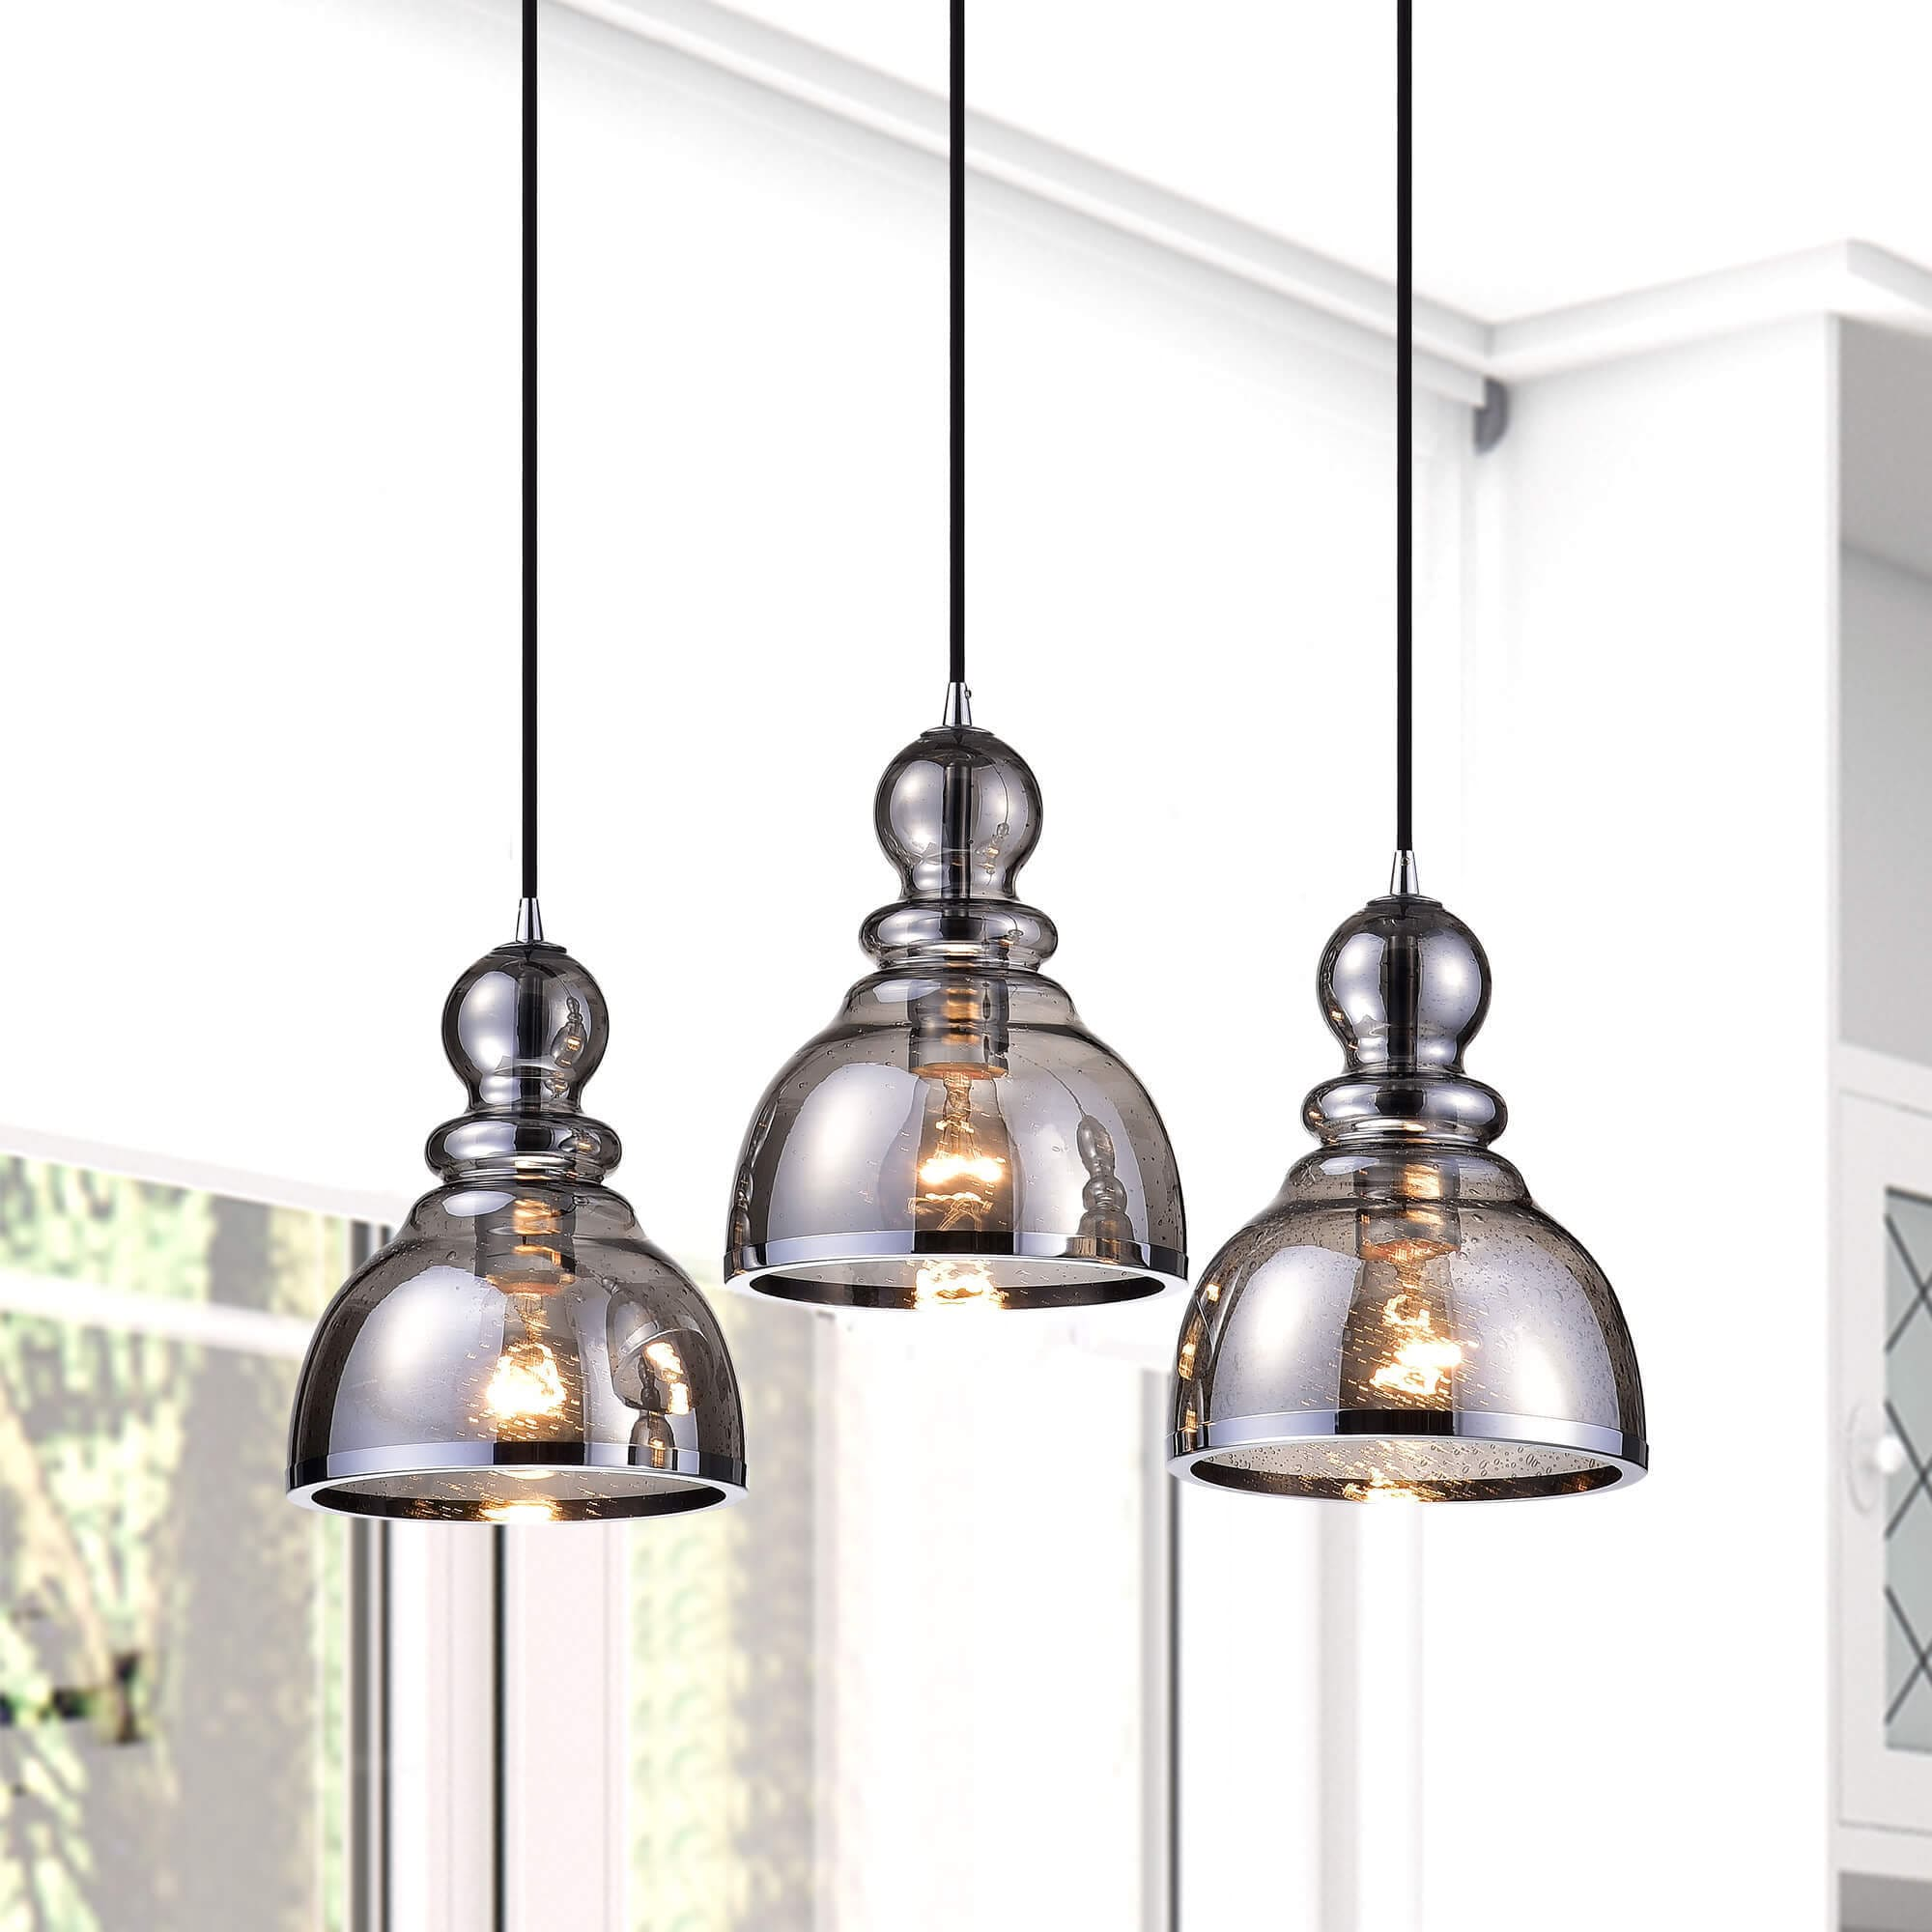 ananes lamp diy com ceiling bronze ceilings p light black effect